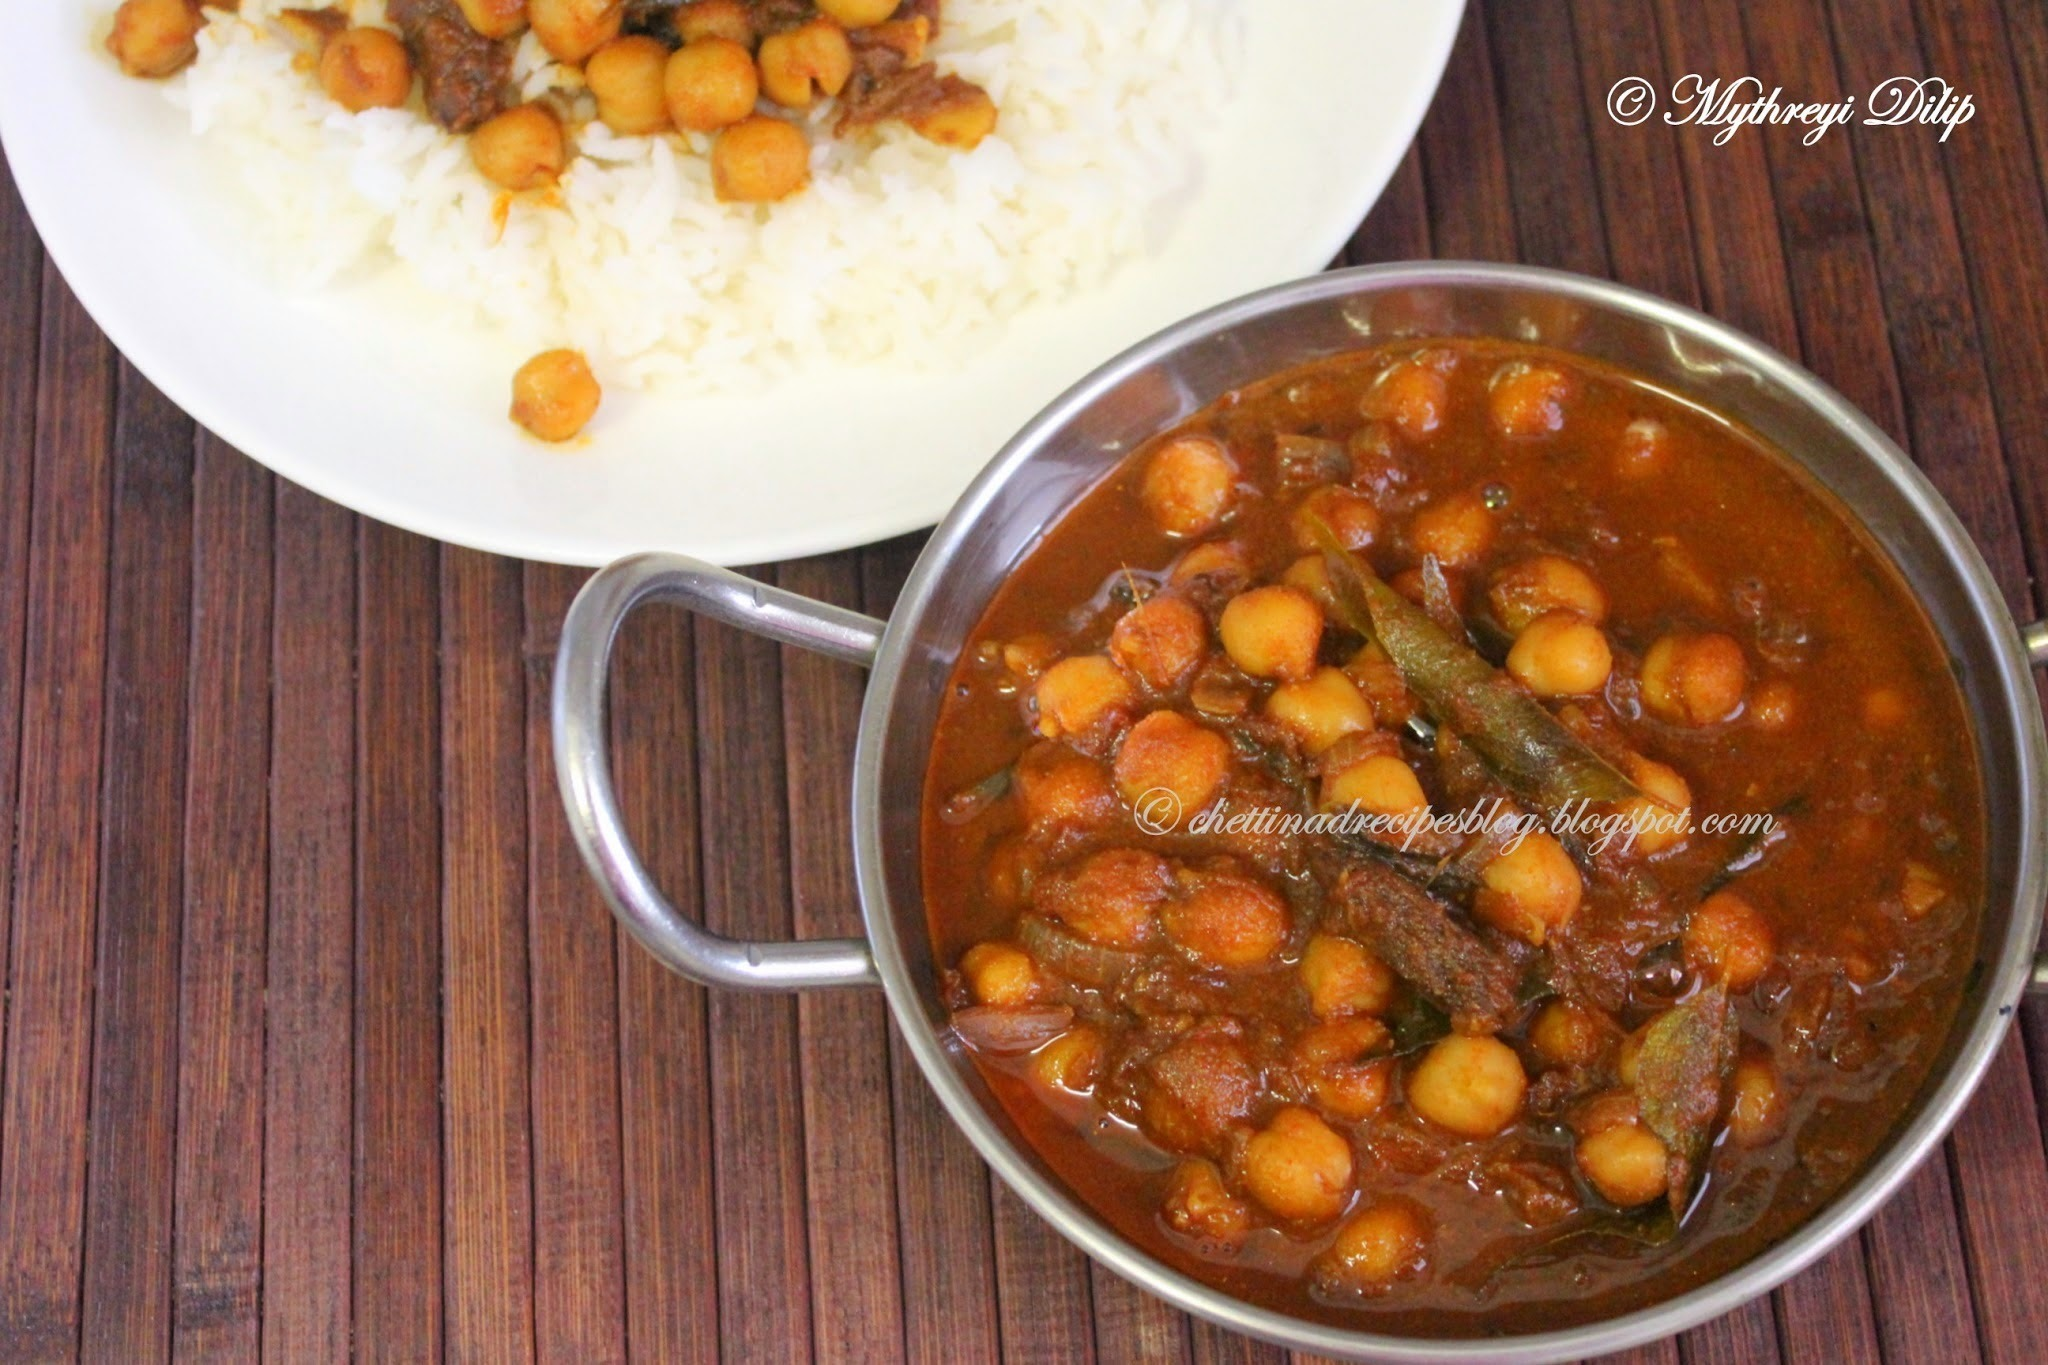 Chettinad Konda Kadalai Karuvadu Kuzhambu / Dried Fish Chickpea Curry.